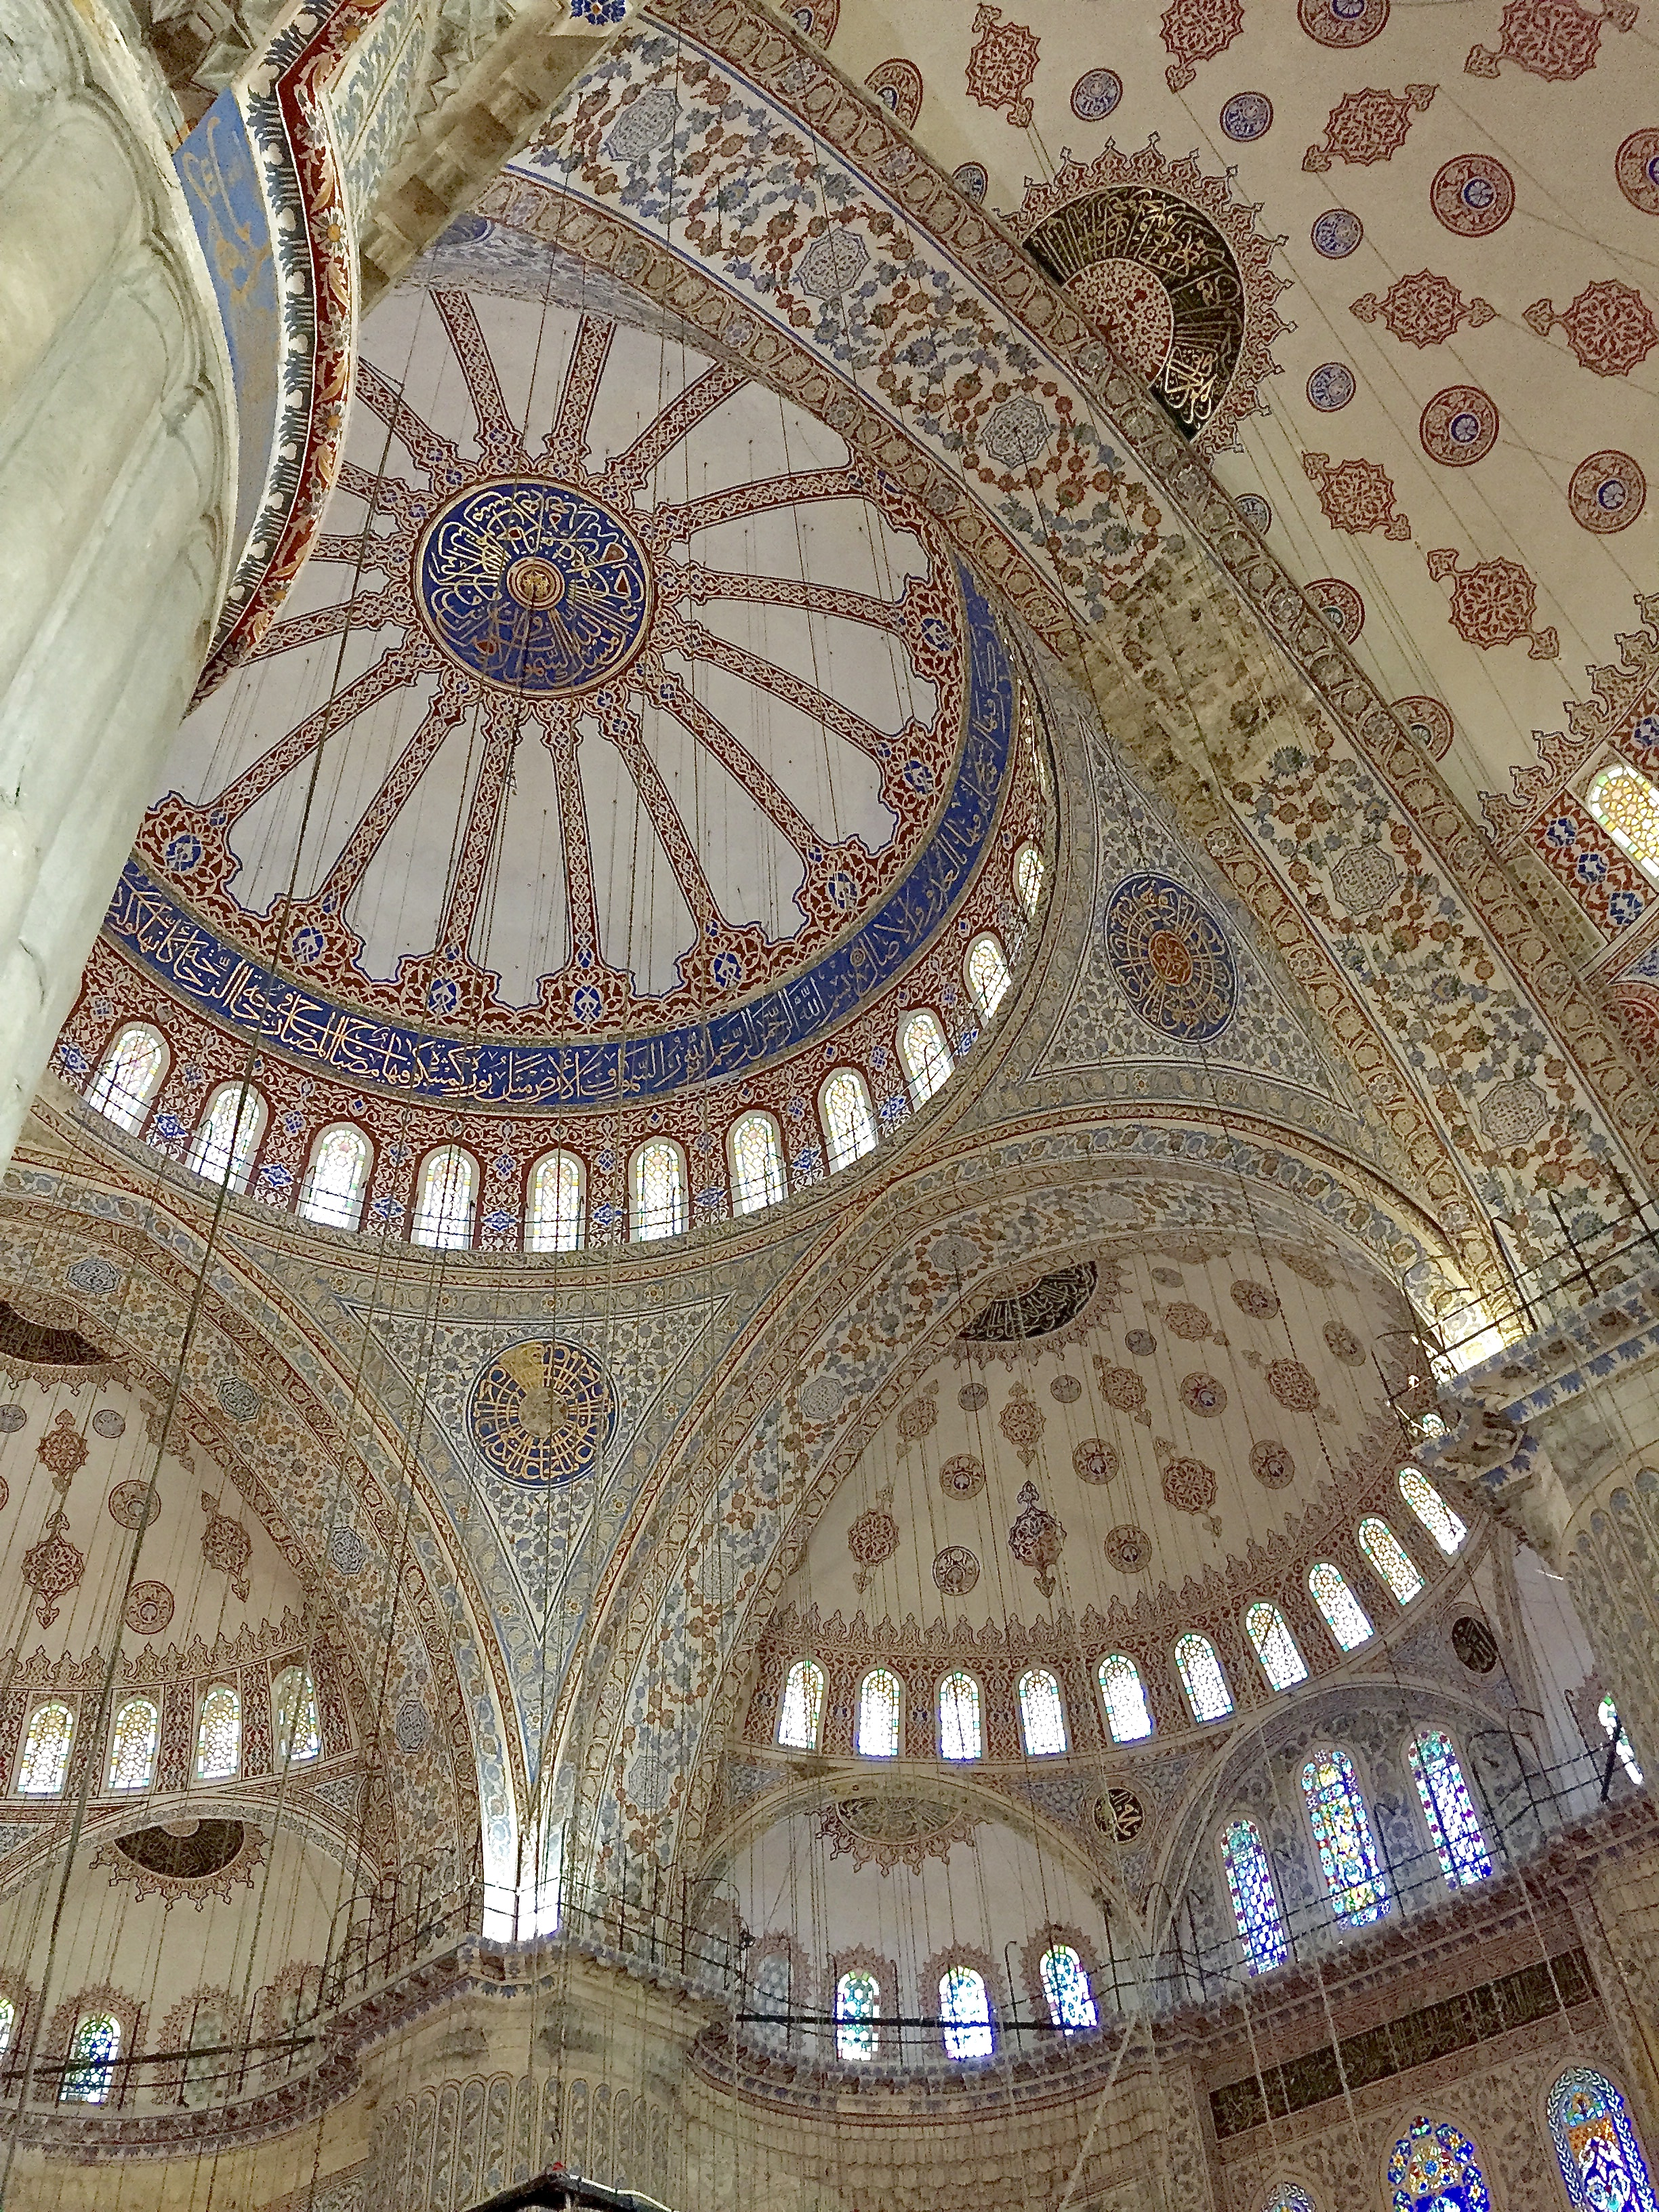 Image of the Blue Mosque, Stop 5 on our Istanbul itinerary